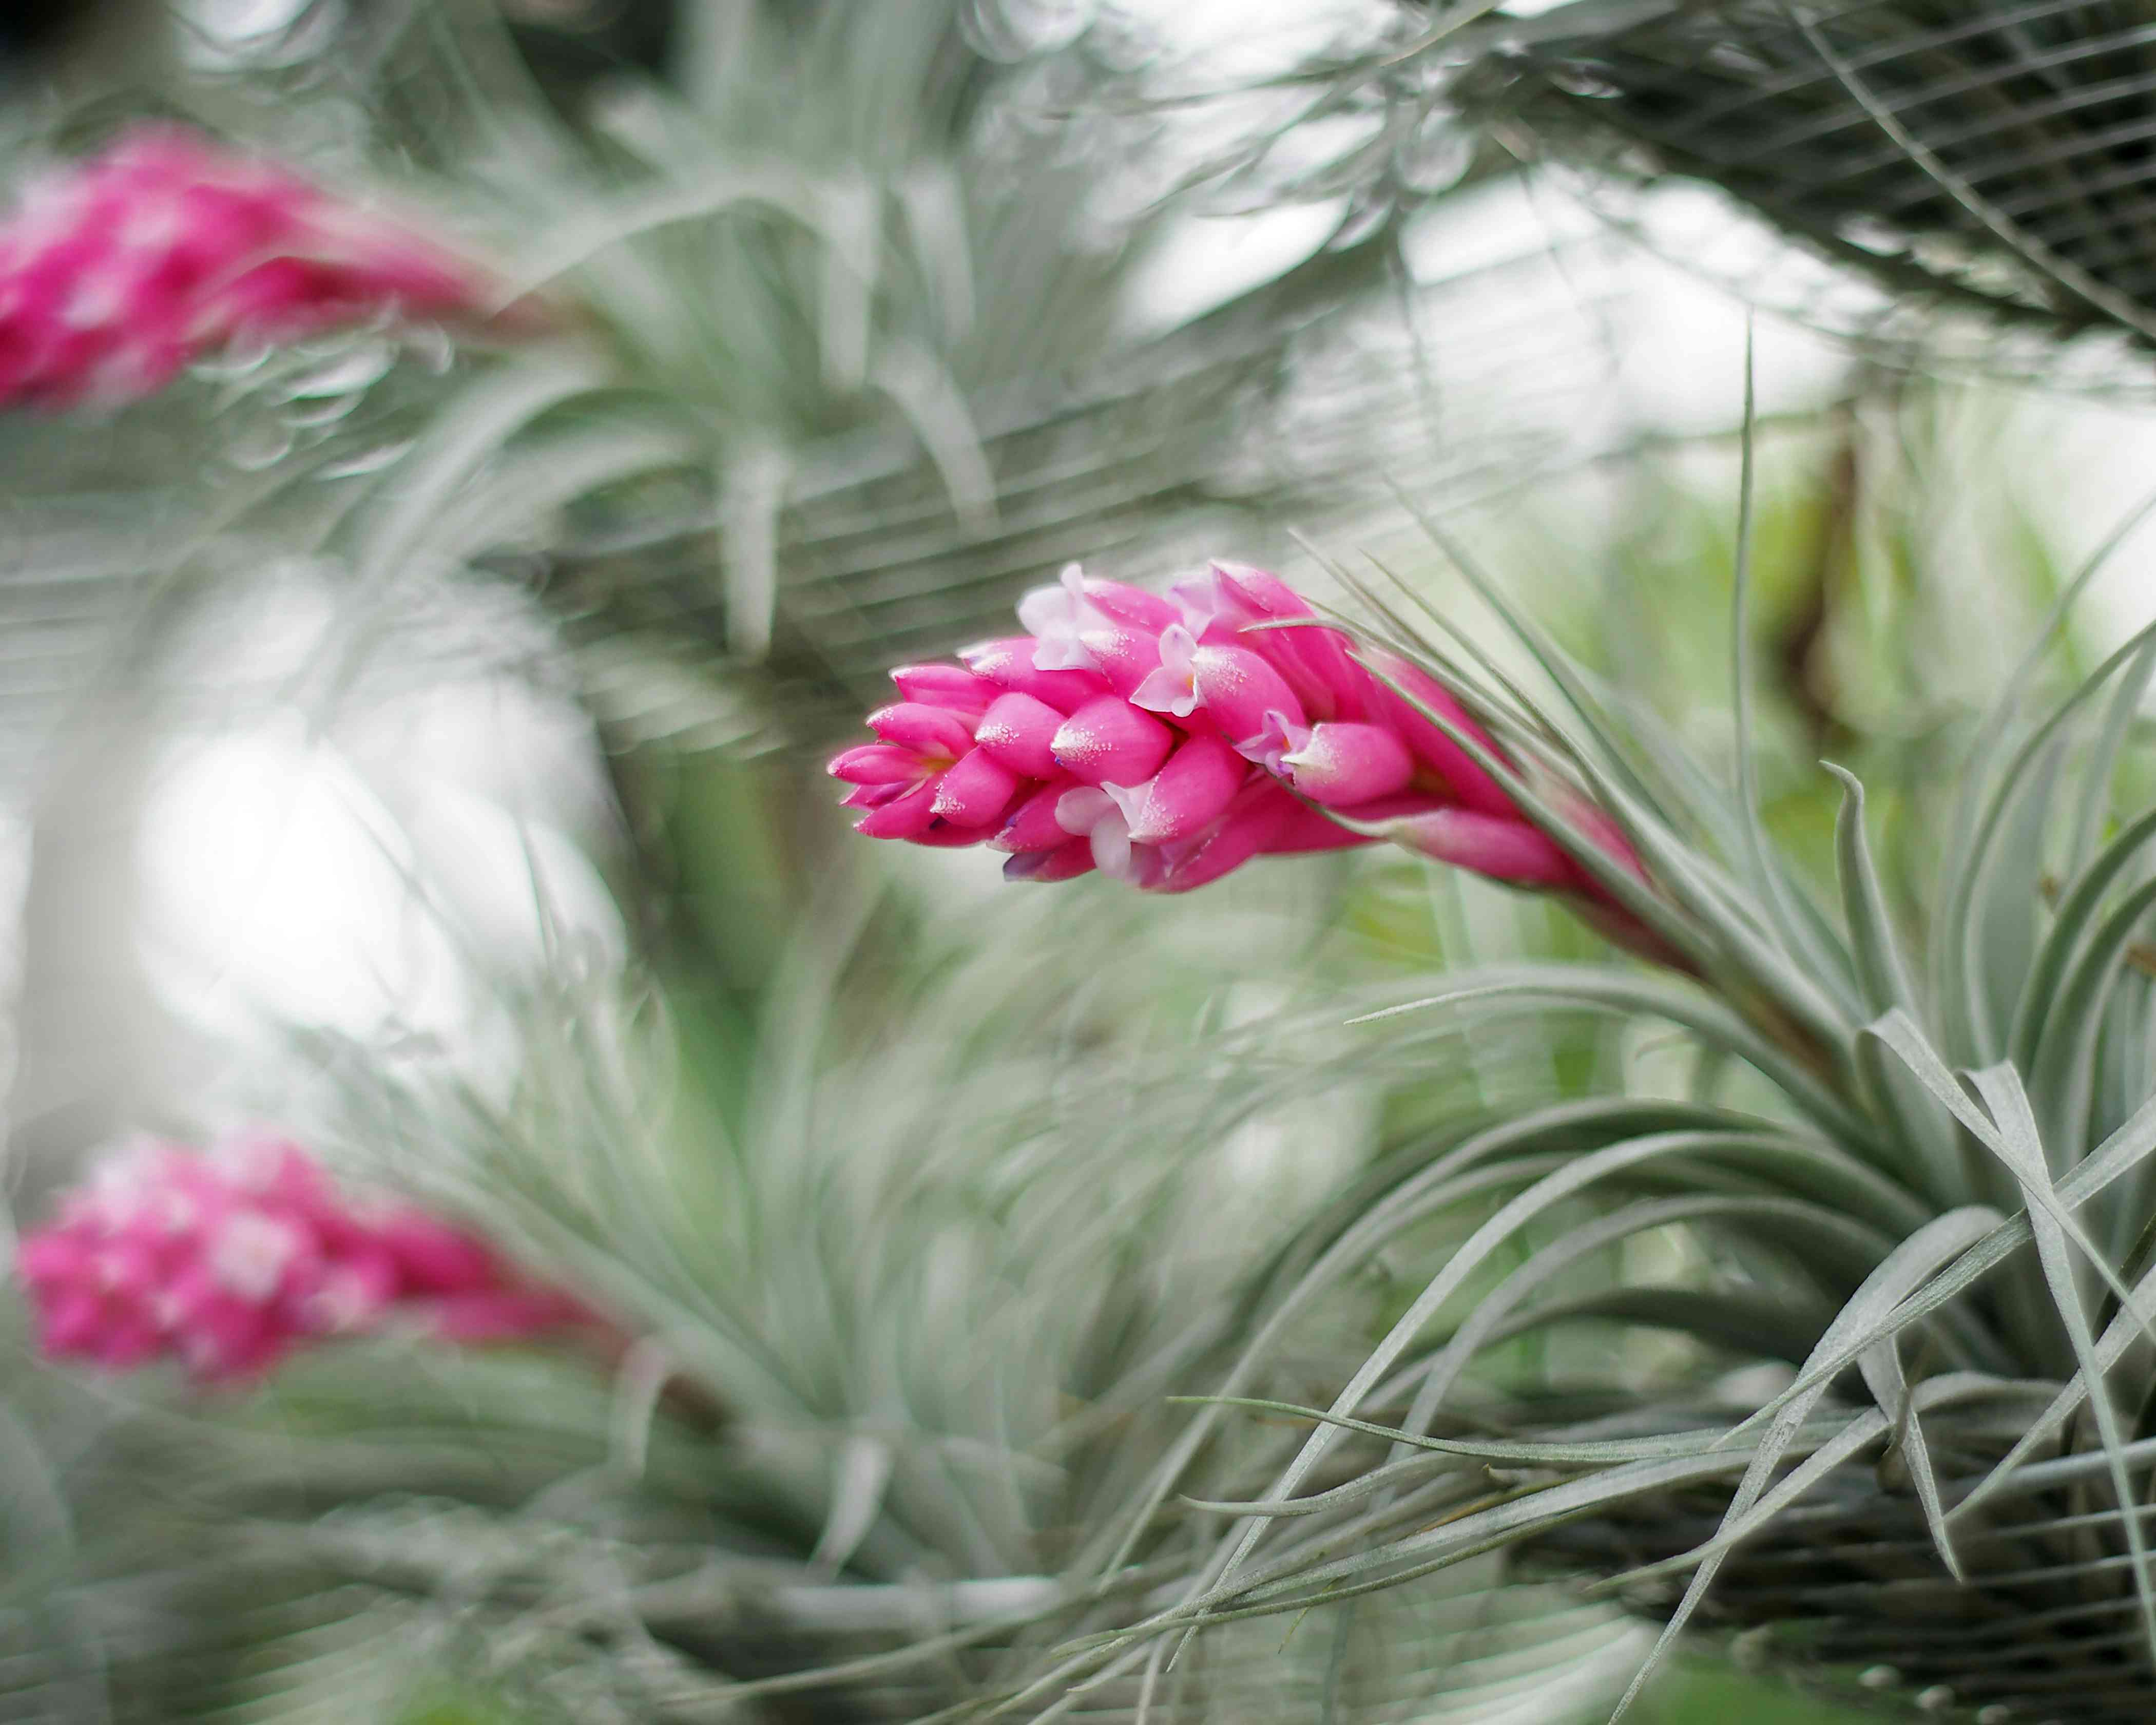 'Cotton Candy' air plant with silvery green leaves and bright pink blooms